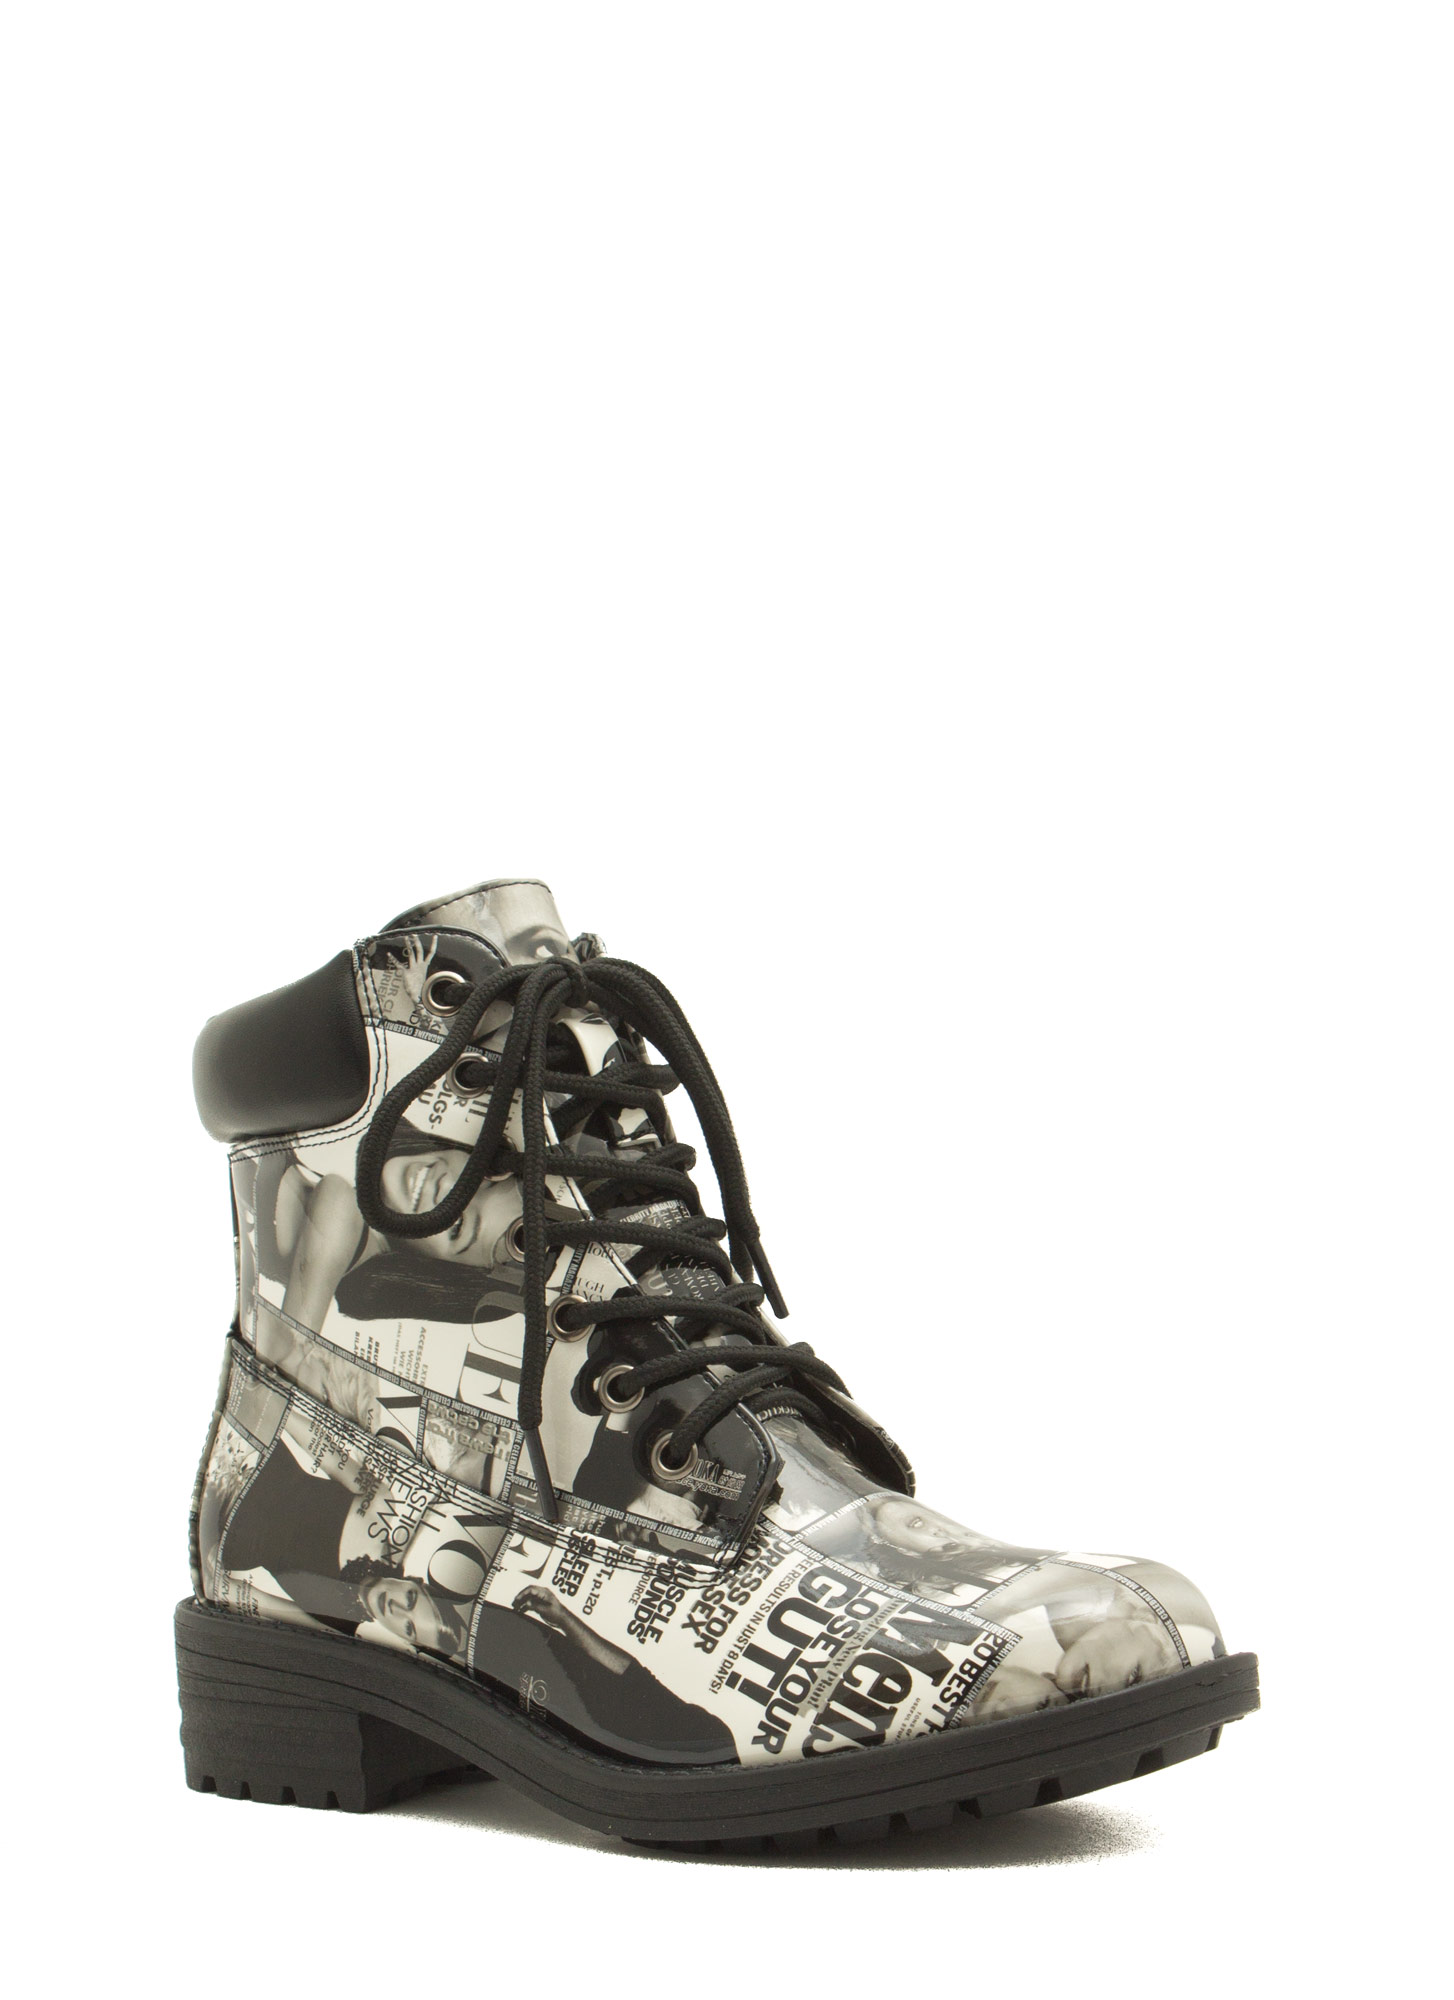 Cover Girl Faux Patent Lace-Up Boots BLACK